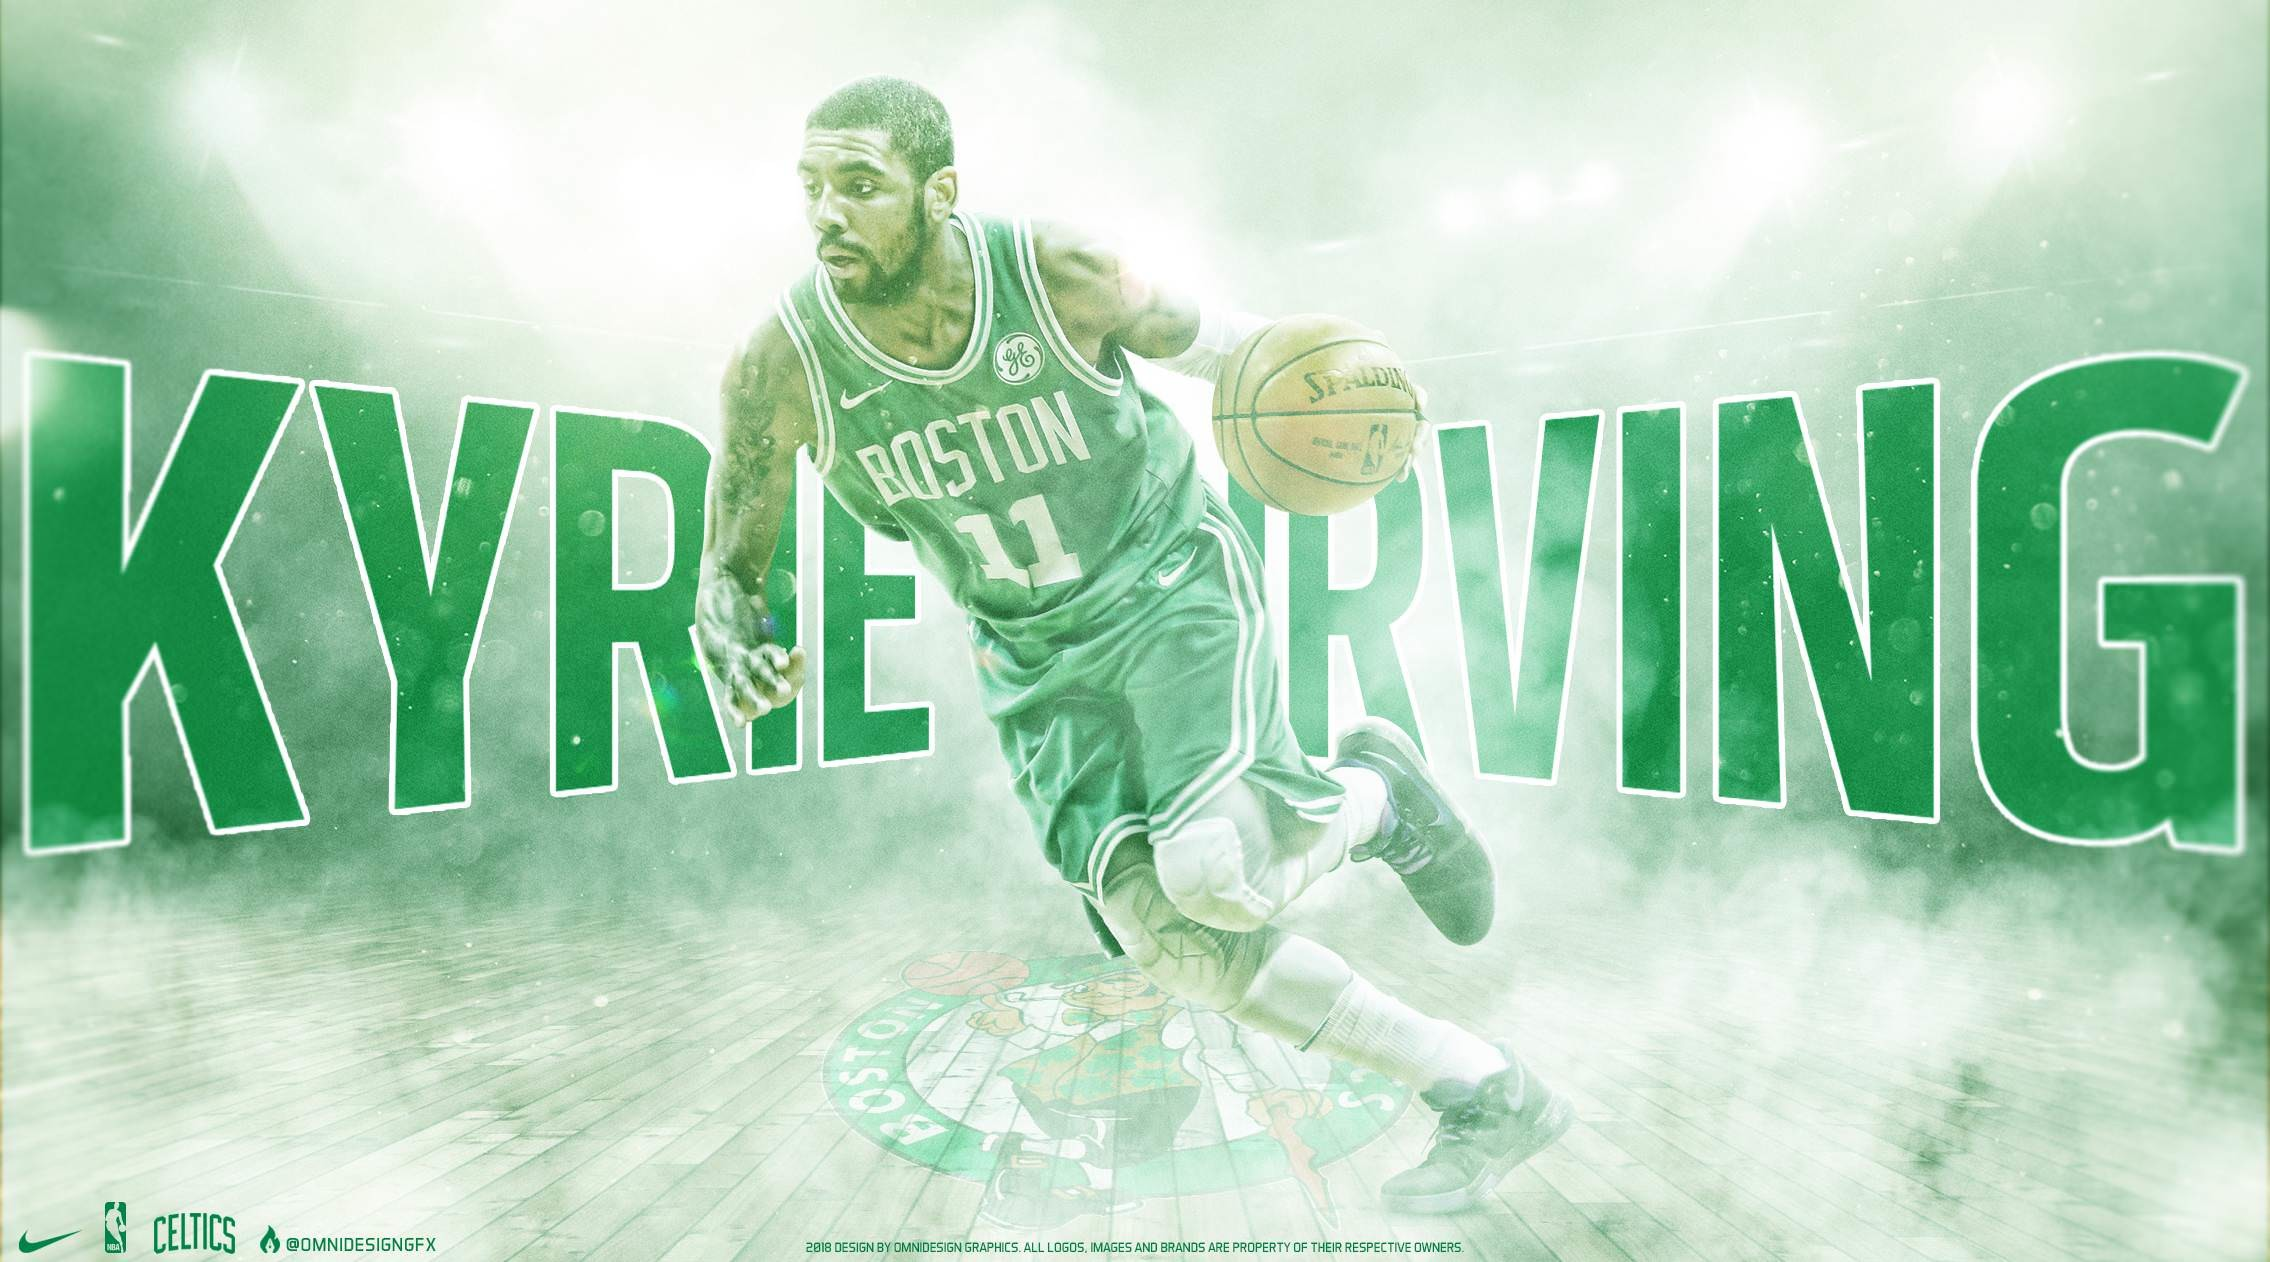 Kyrie Irving Wallpaper Iphone X Kyrie Irving 2018 Wallpapers 73 Background Pictures